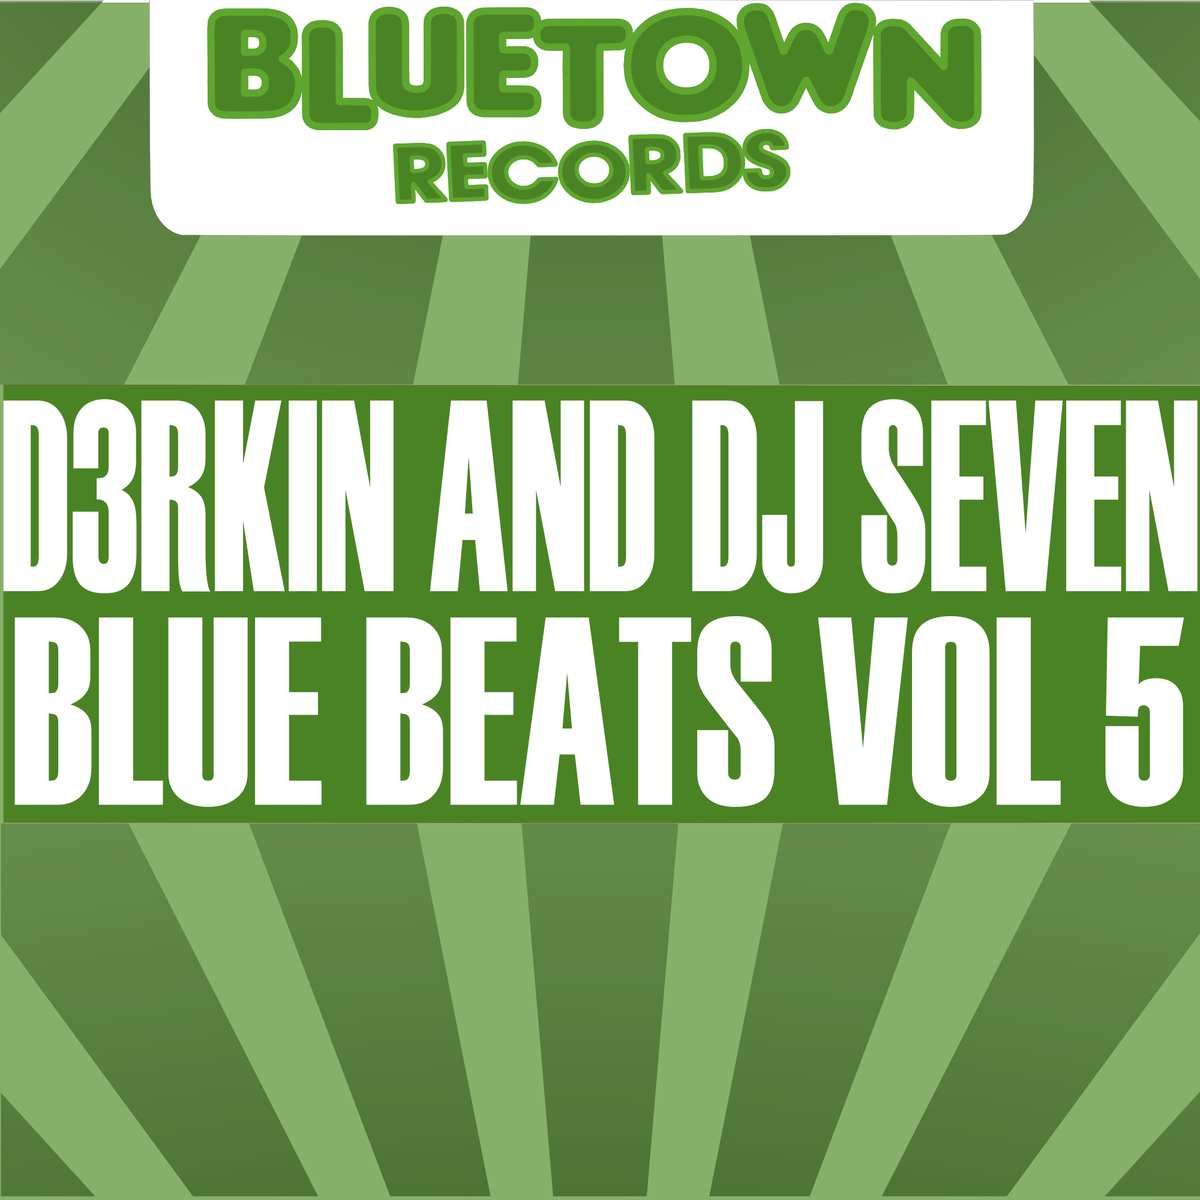 Out now! Blue Beats Volume 5 with D3rkin and DJ Seven Chicago  http://www. traxsource.com/title/773182/b luebeats-volume-5 &nbsp; …  #realhousemusic #jackinhouse<br>http://pic.twitter.com/8LwJS6JH3t